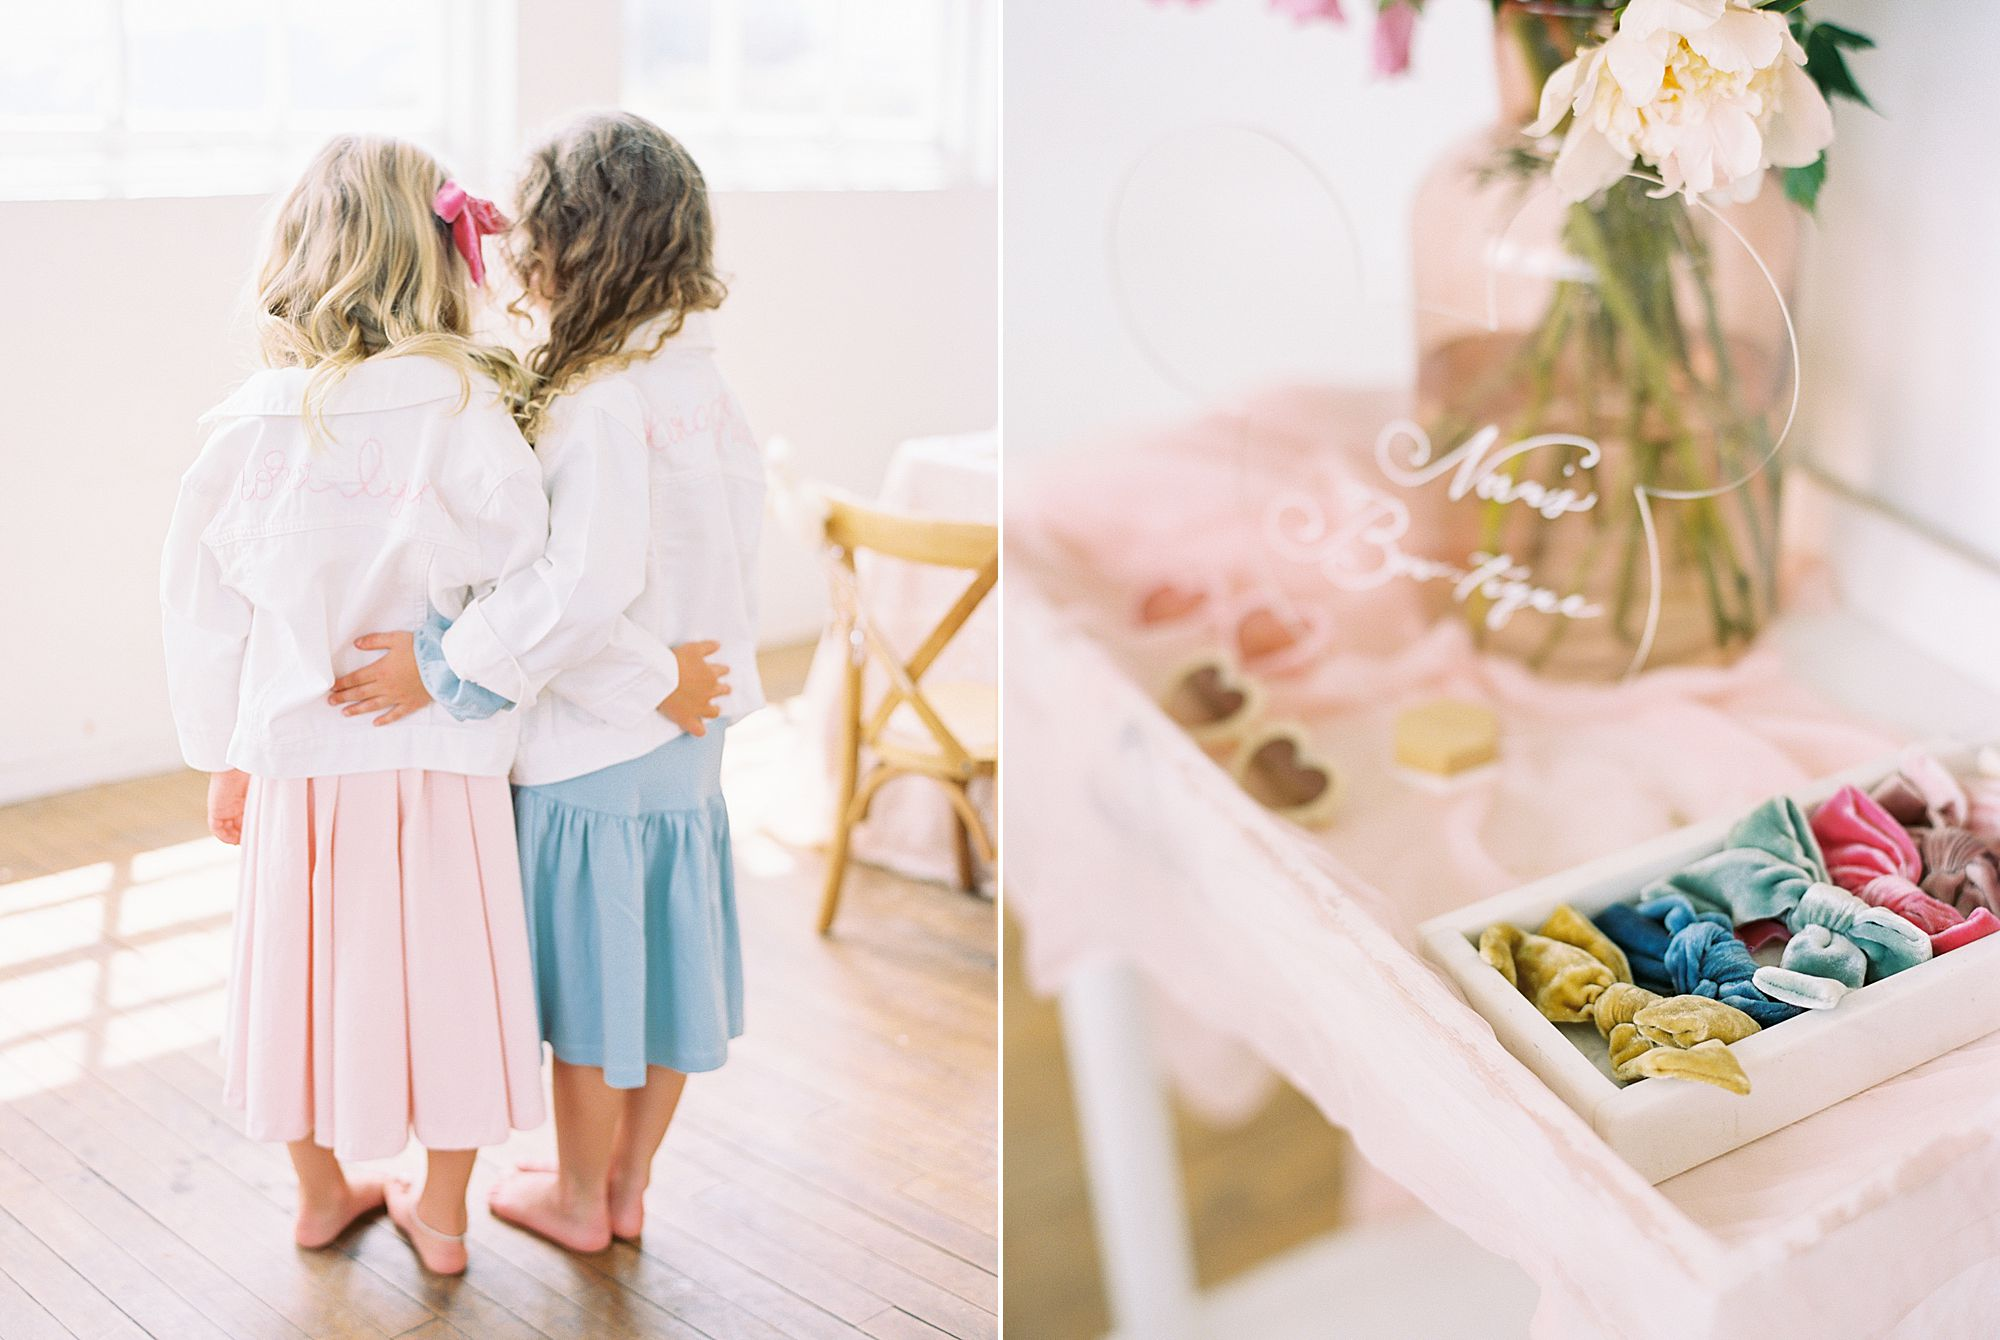 Vintage Disney Birthday Party for Princess Nora's Fourth Birthday - Featured on 100 Layer Cake - Ashley Baumgartner - Parker Grace Events_0040.jpg